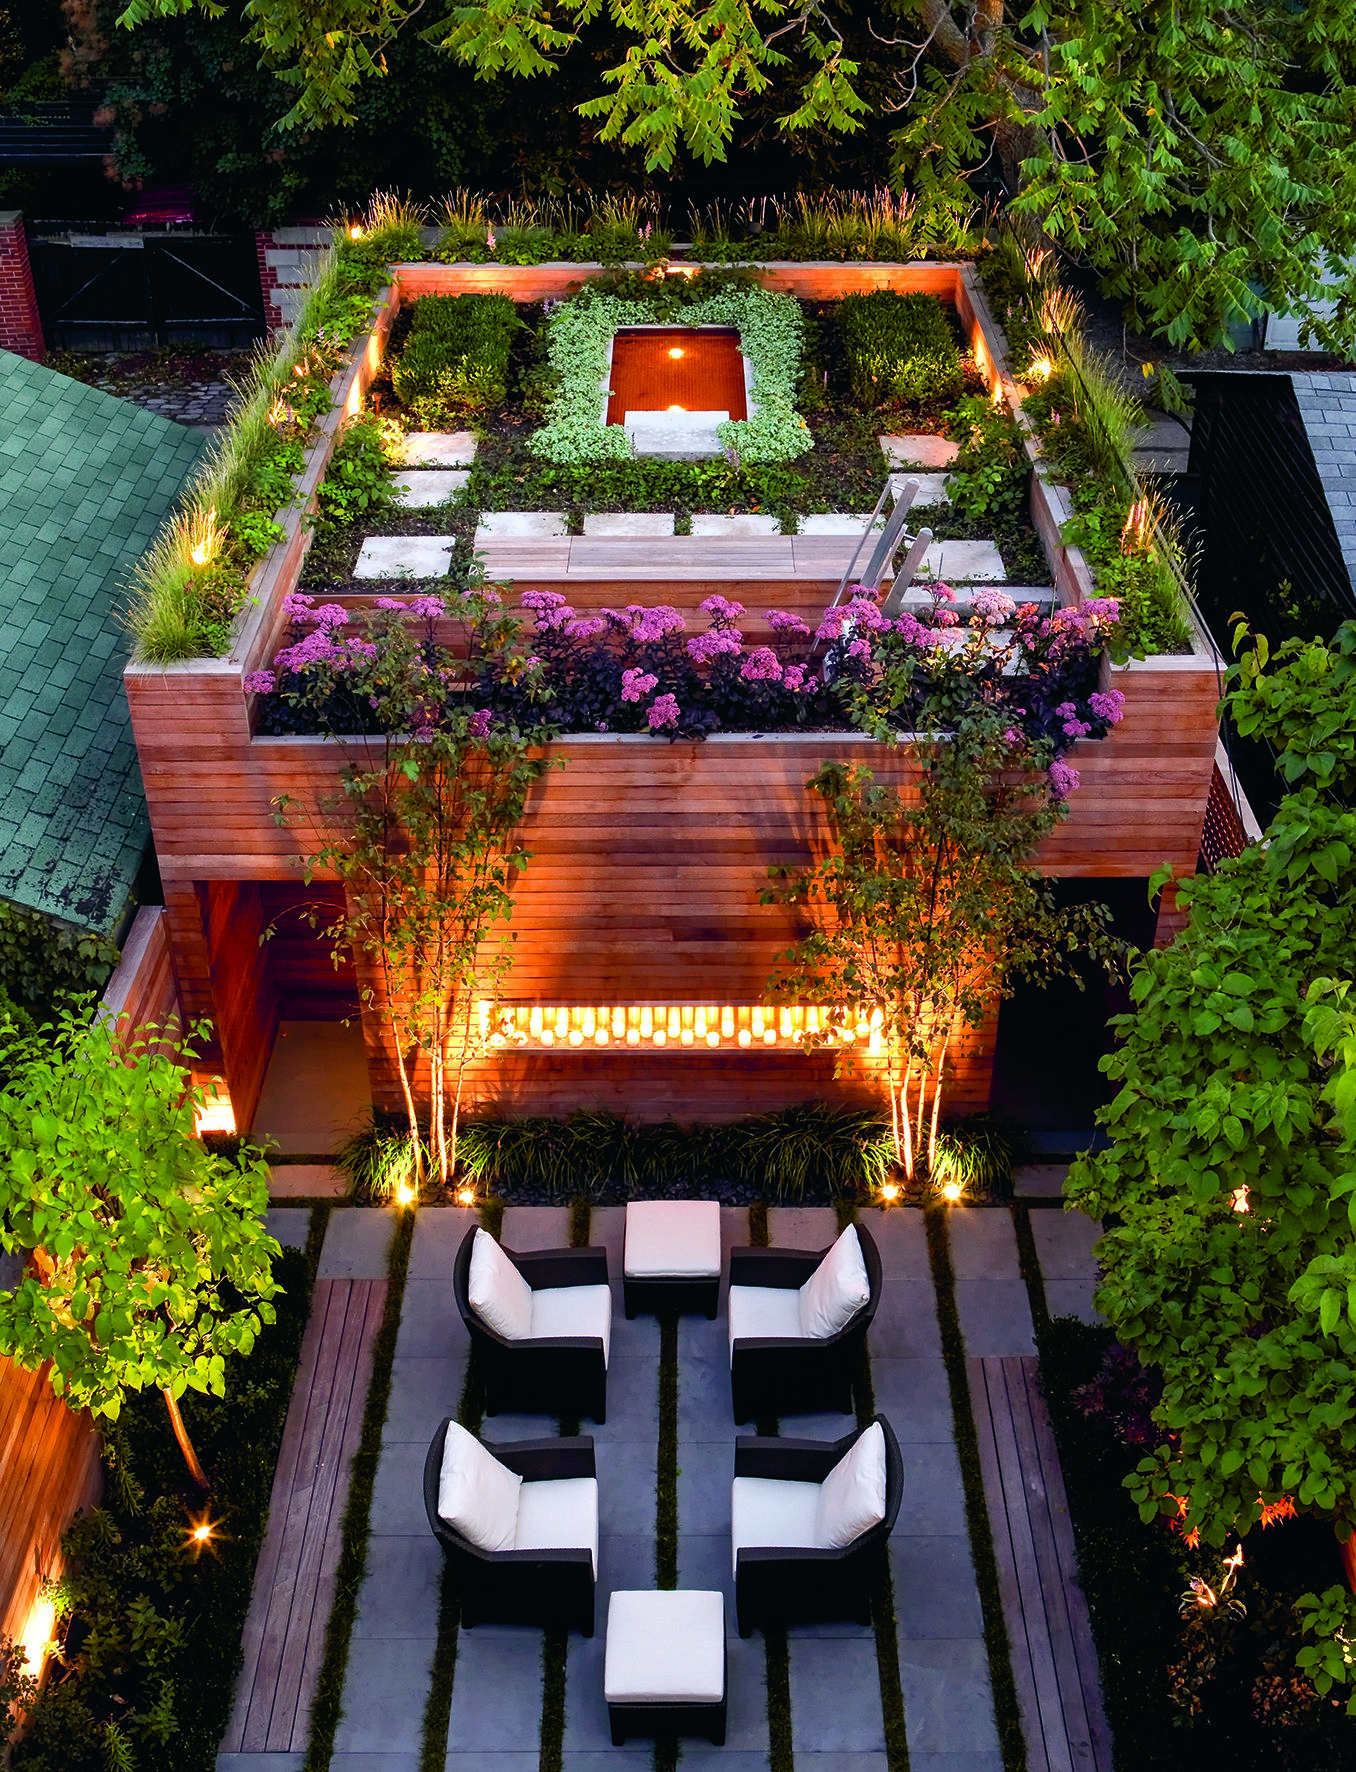 9 Remarkable Rooftop Garden Designs Around The World Roof Garden Design Green Roof Garden Rooftop Design